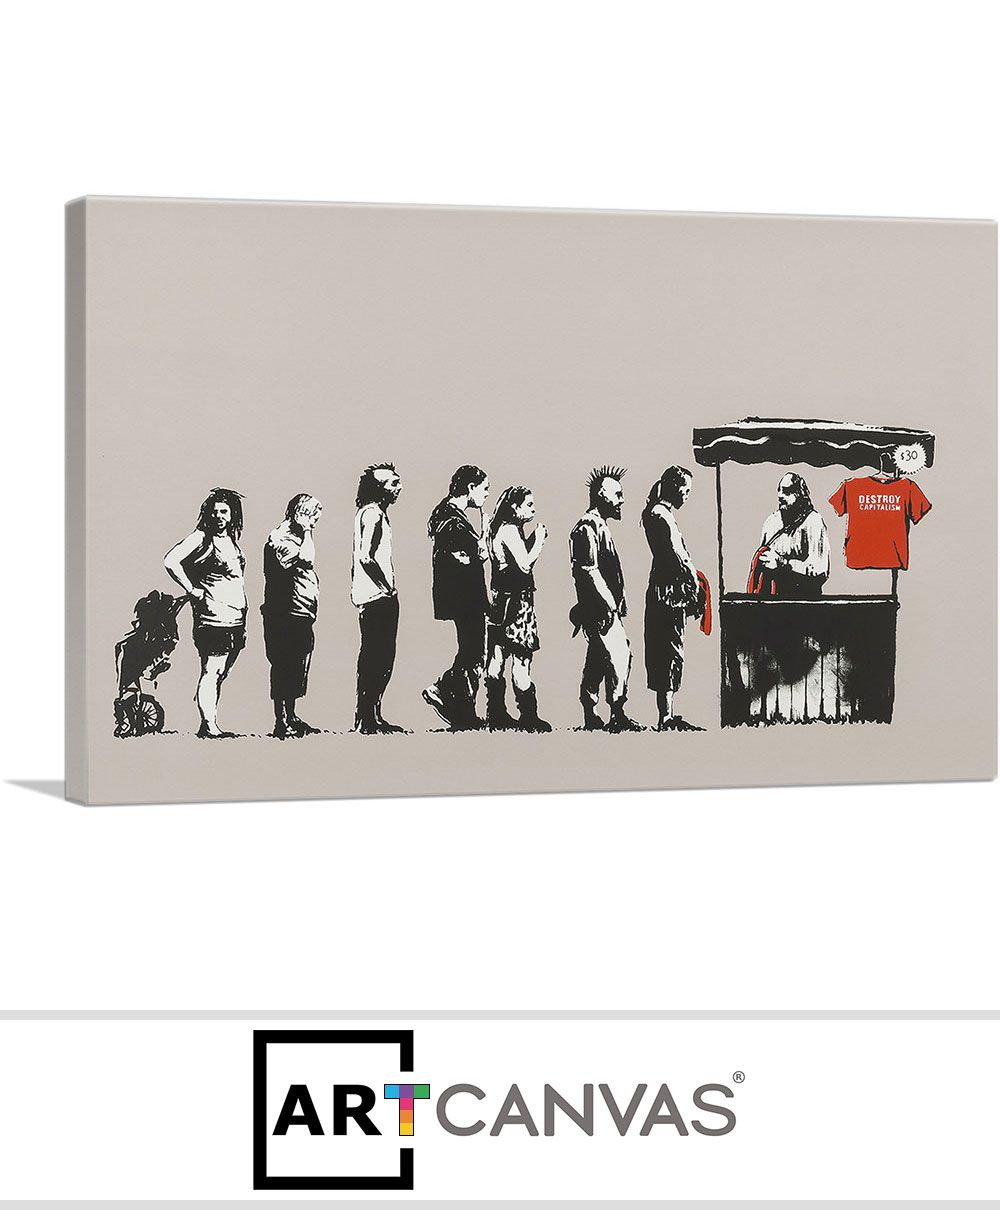 Banksy Canvas Art Destroy Capitalism Canvas Art Print For Sale Artcanvas